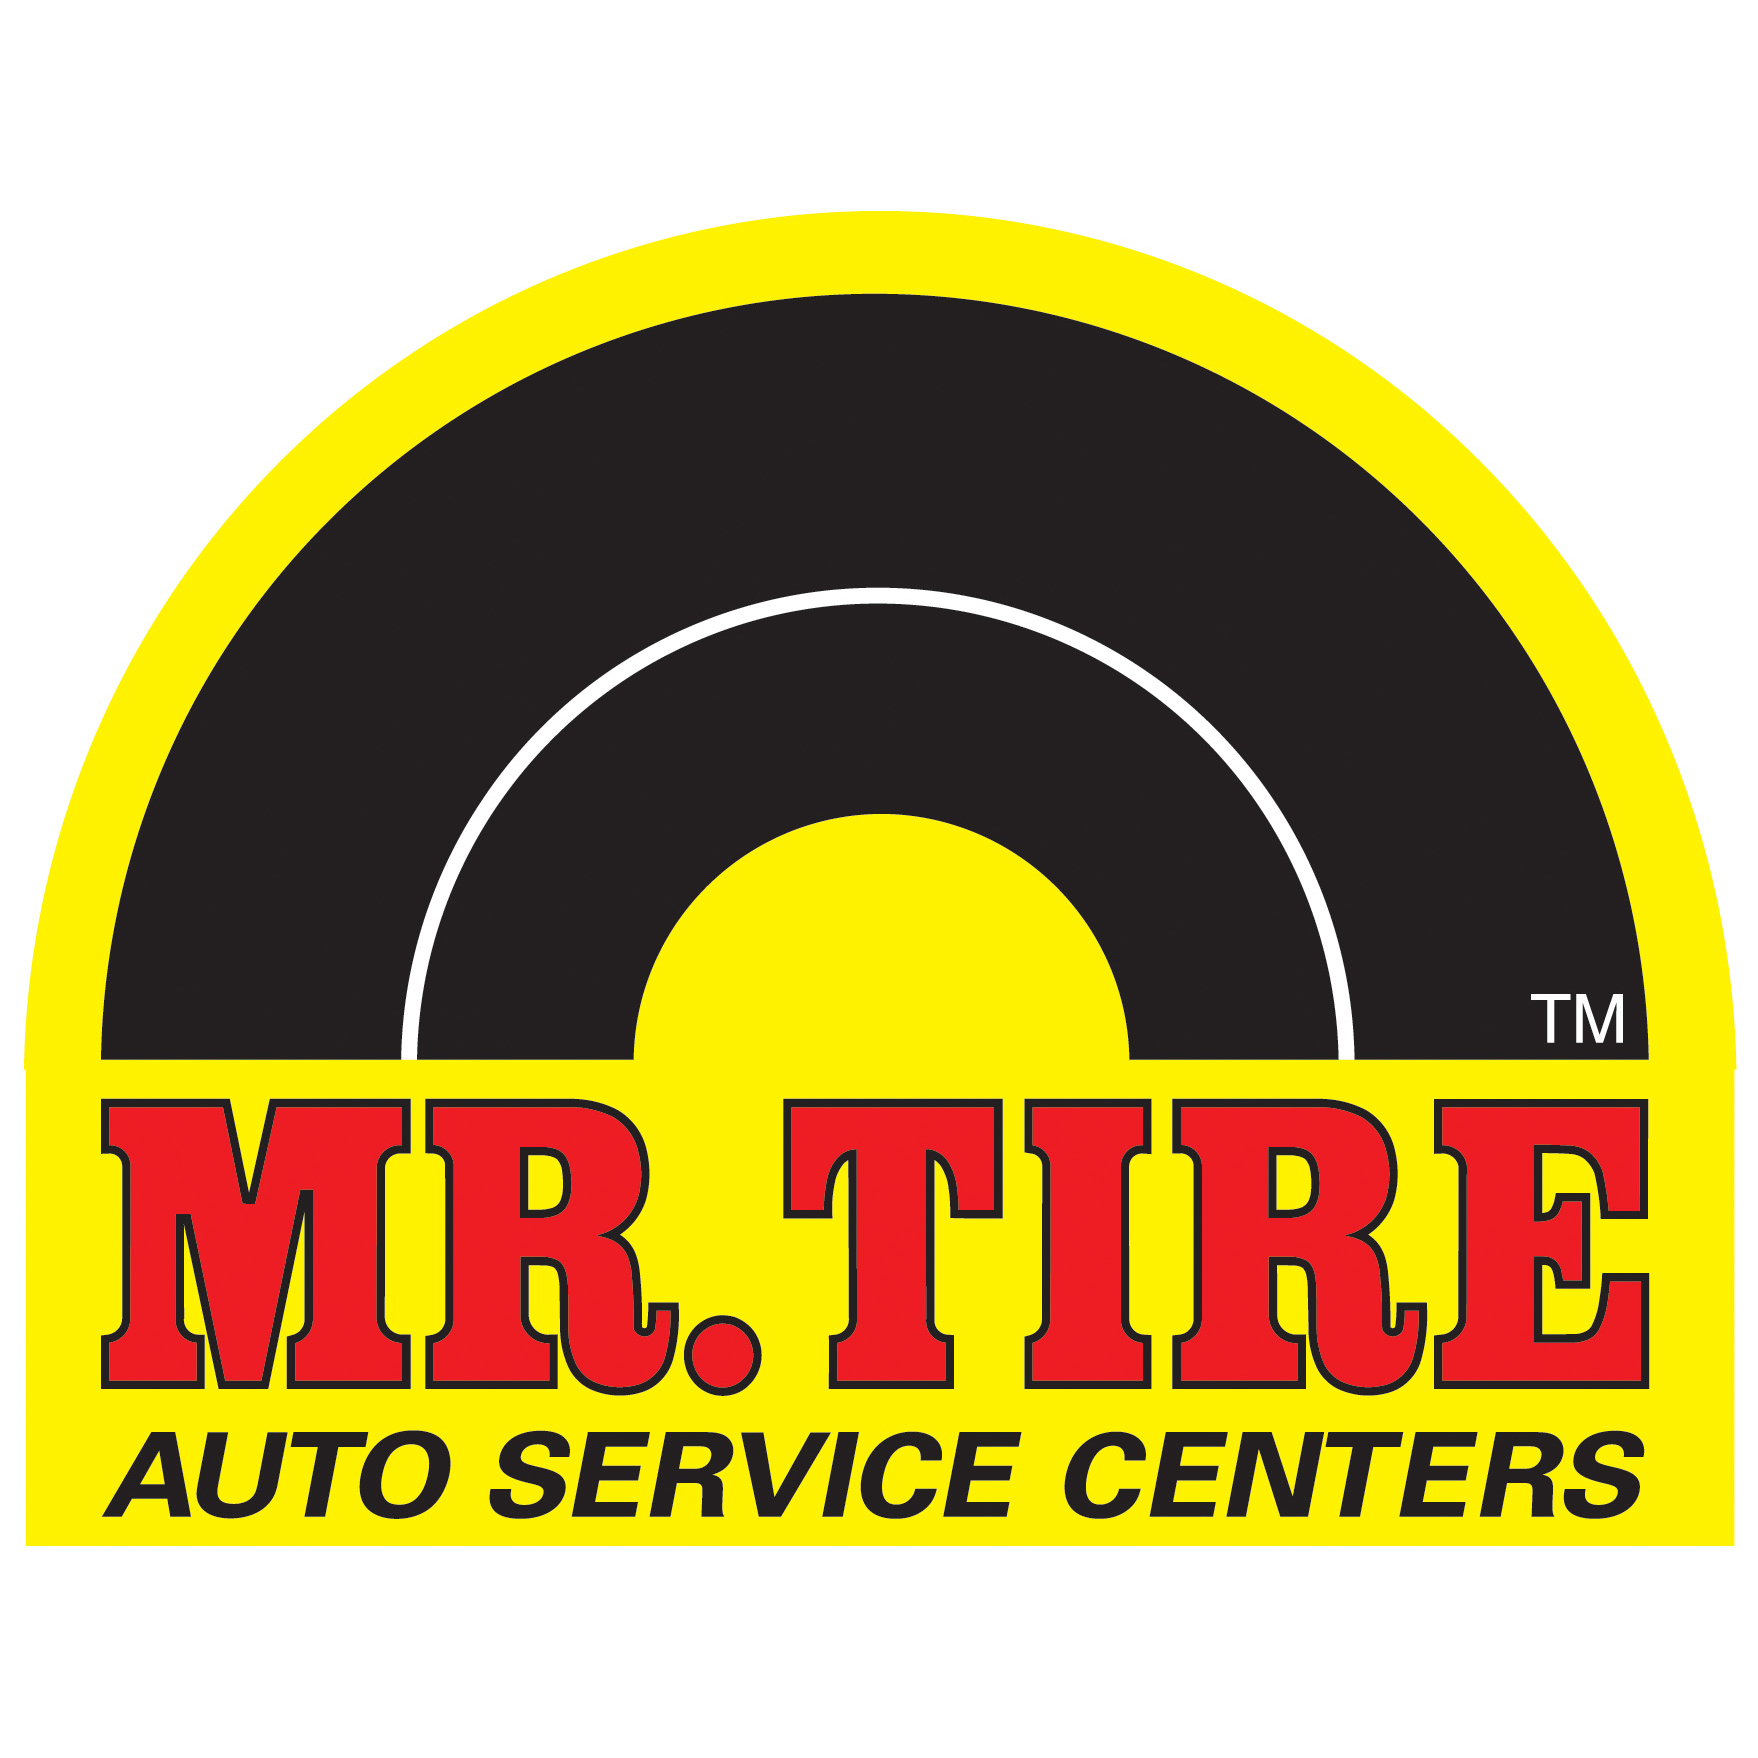 Mr Tire Auto Service Centers - Monroeville, PA - Tires & Wheel Alignment